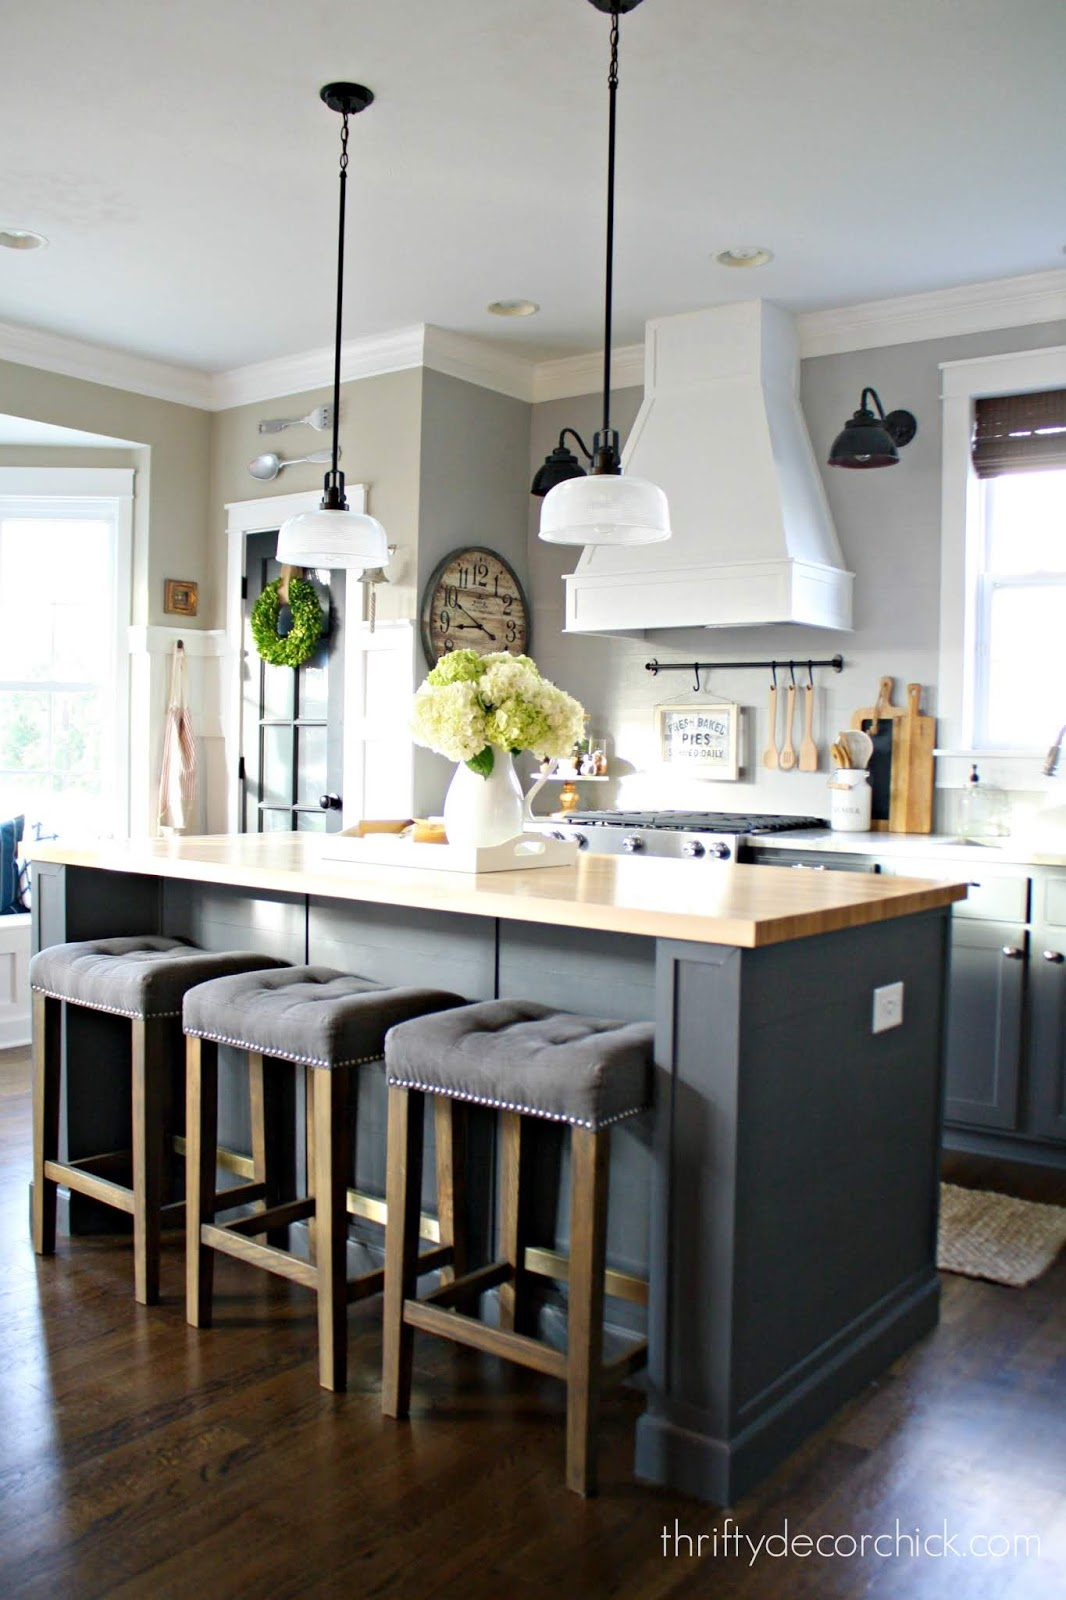 Extending kitchen island for microwave